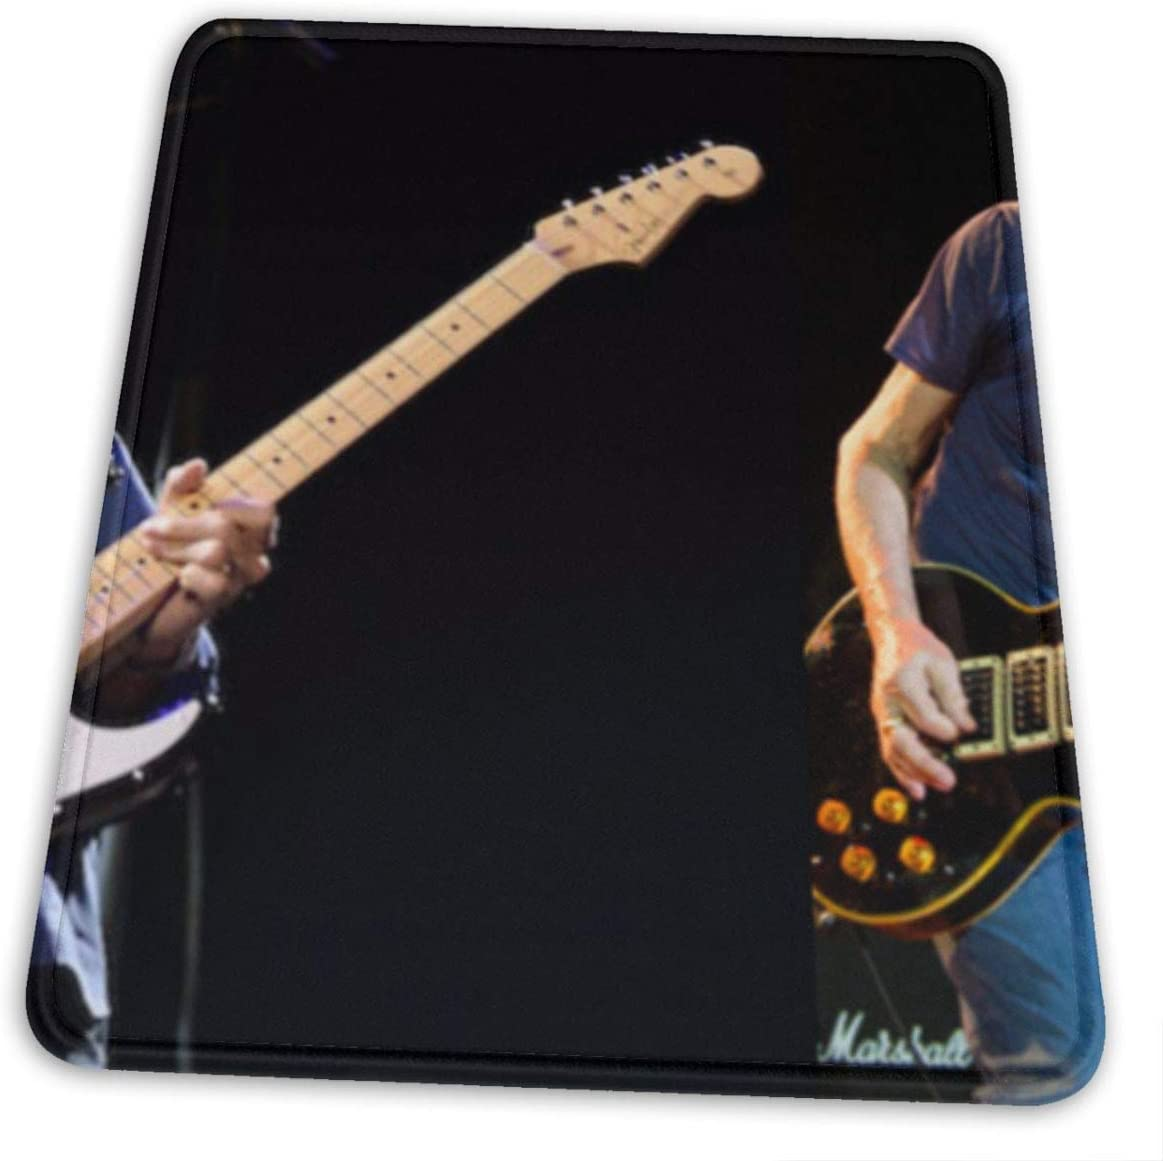 Precise Edging Clapton Green and Environmentally Friendly Close to The Table Without Deformation Mouse Pad 7 X 8.6 in Eric